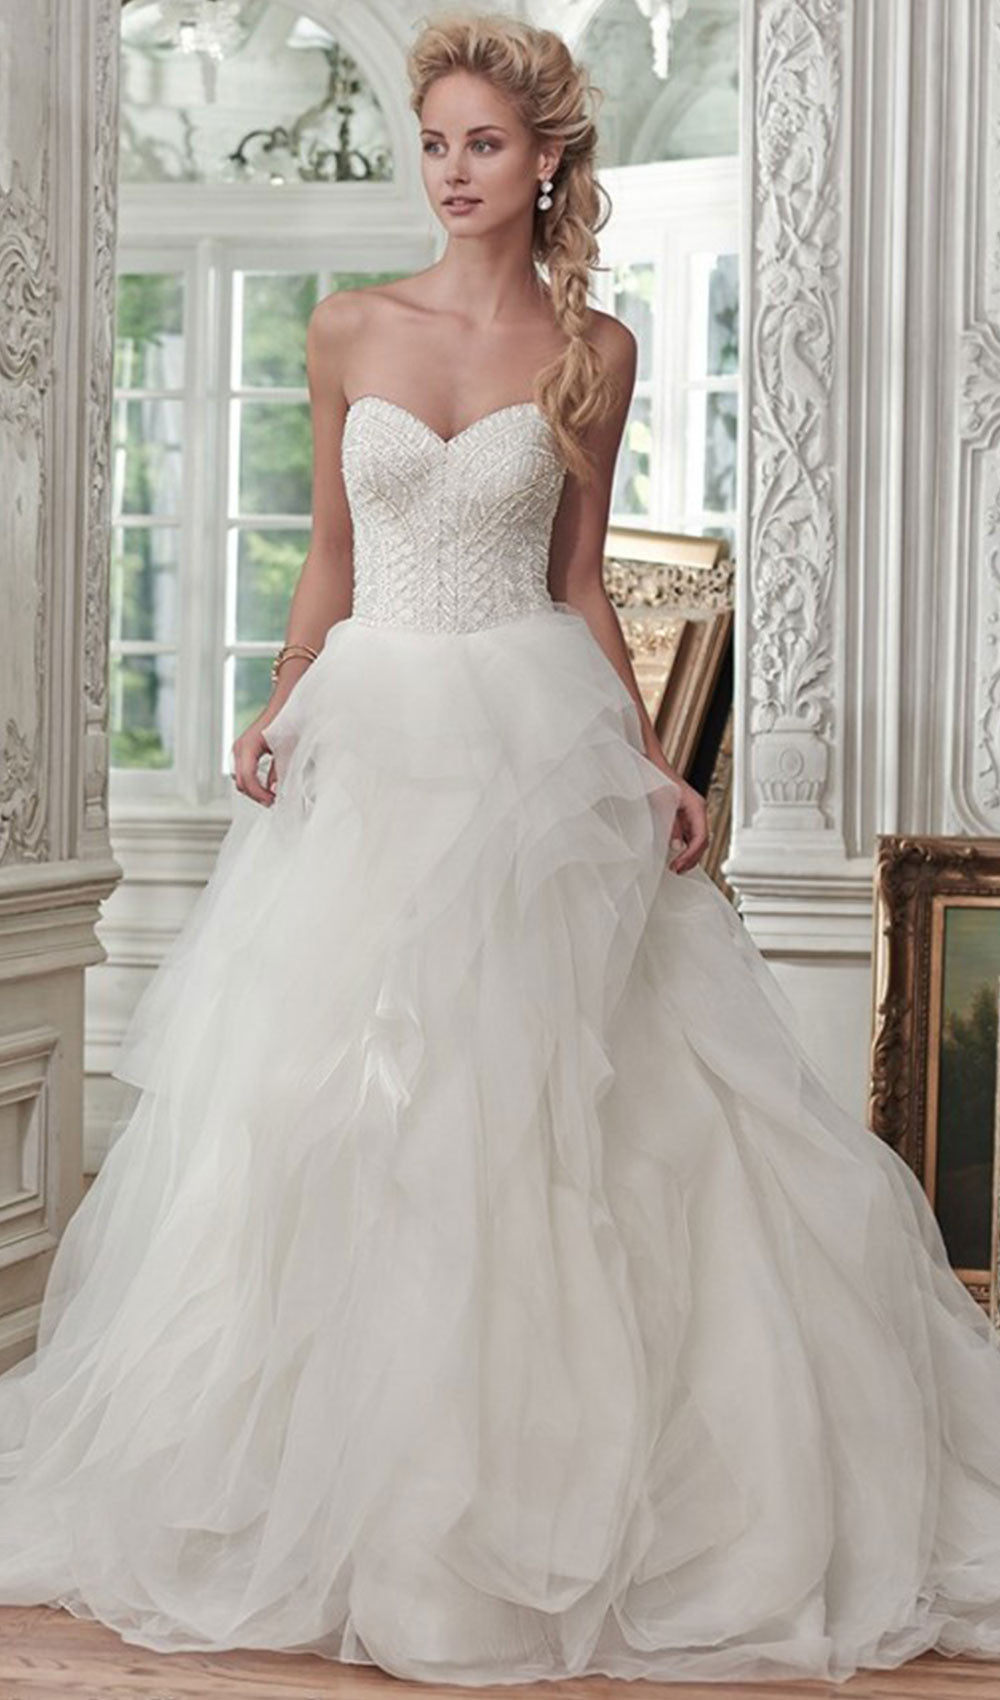 Maggie Sottero - STYLE O'HARA |Schaffer's Bridal in Des Moines, Iowa  and in Scottsdale, Arizona